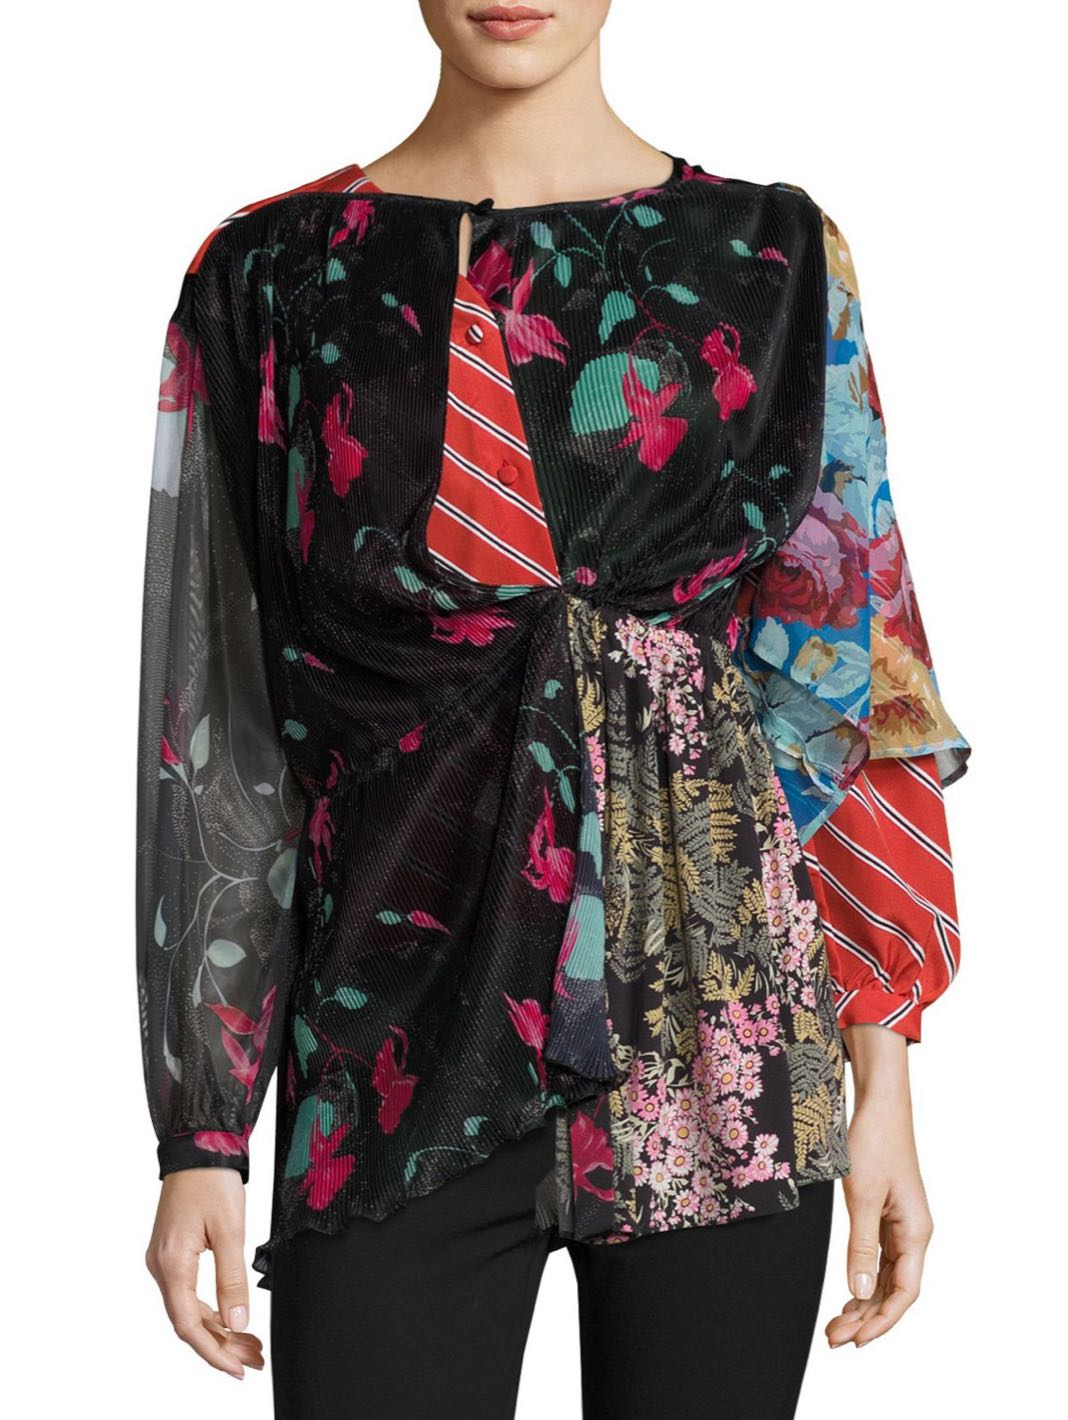 Kaleidoscope Silk-Blend Blouse - The Bobby Boga